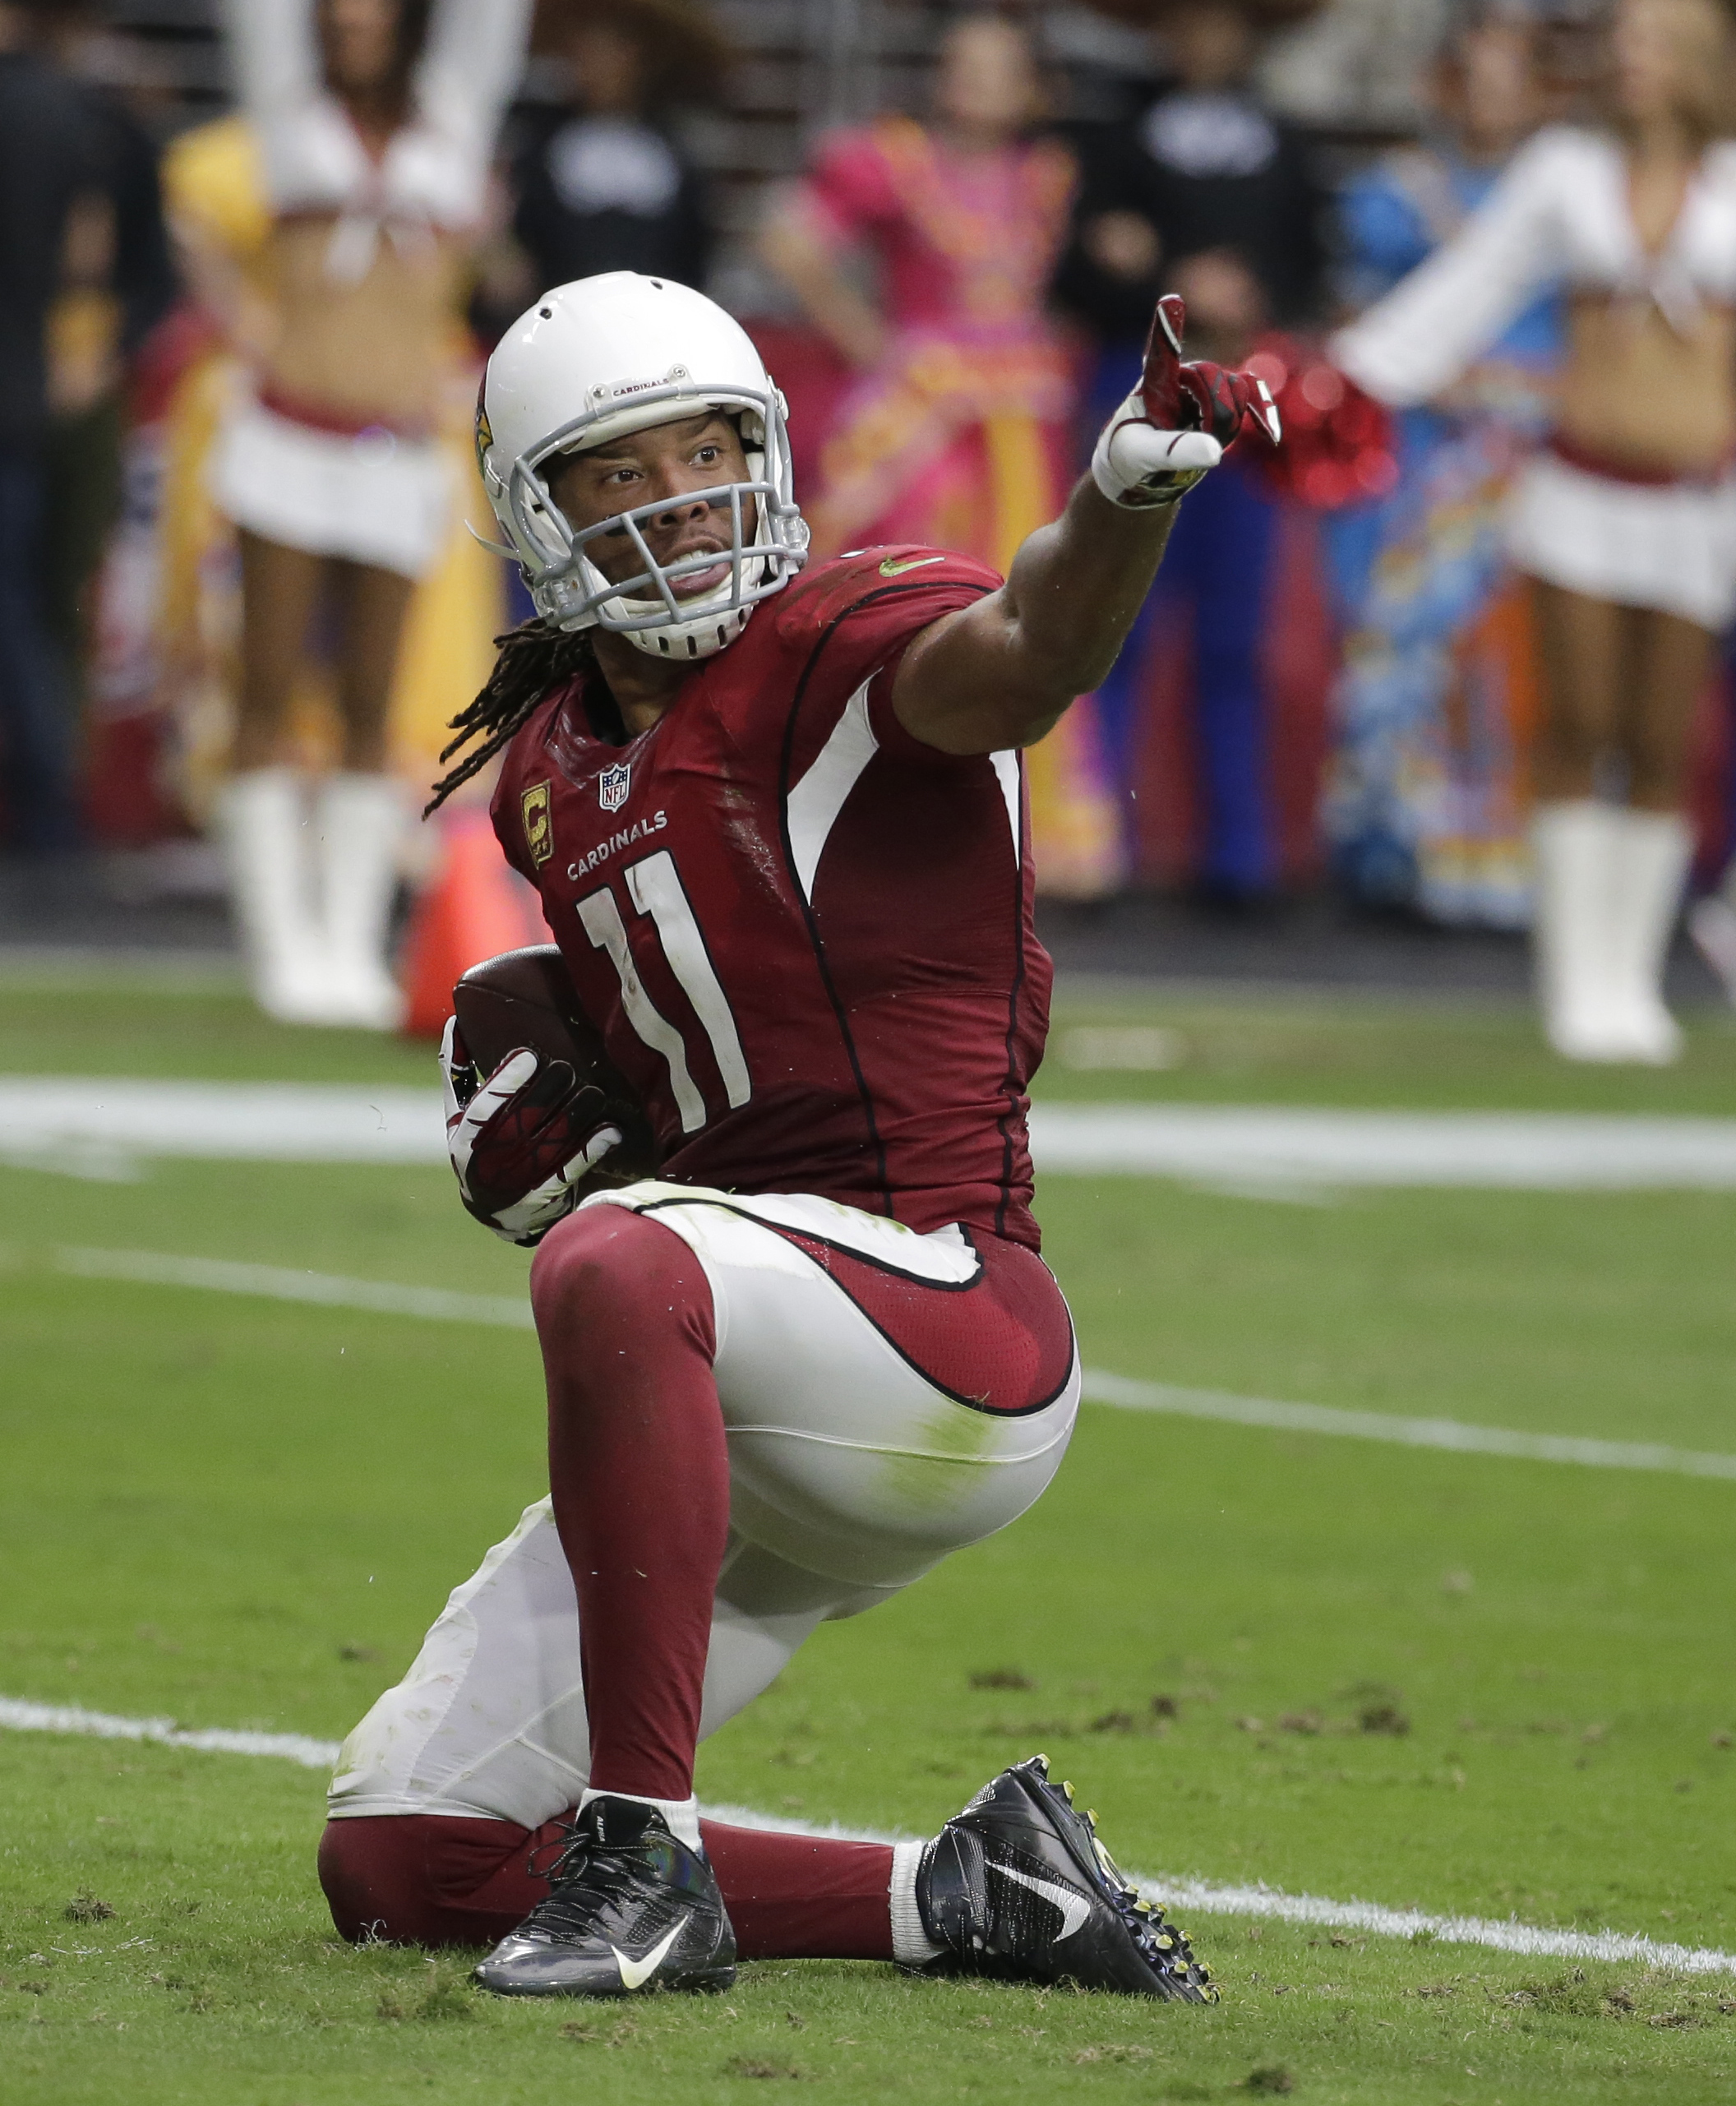 FILE - In this Sunday, Sept. 18, 2016, file photo, Arizona Cardinals wide receiver Larry Fitzgerald (11) during an NFL football game against the Tampa Bay Buccaneers in Glendale, Ariz. Star receiver Fitzgerald is mindful in remembering what happened in hi